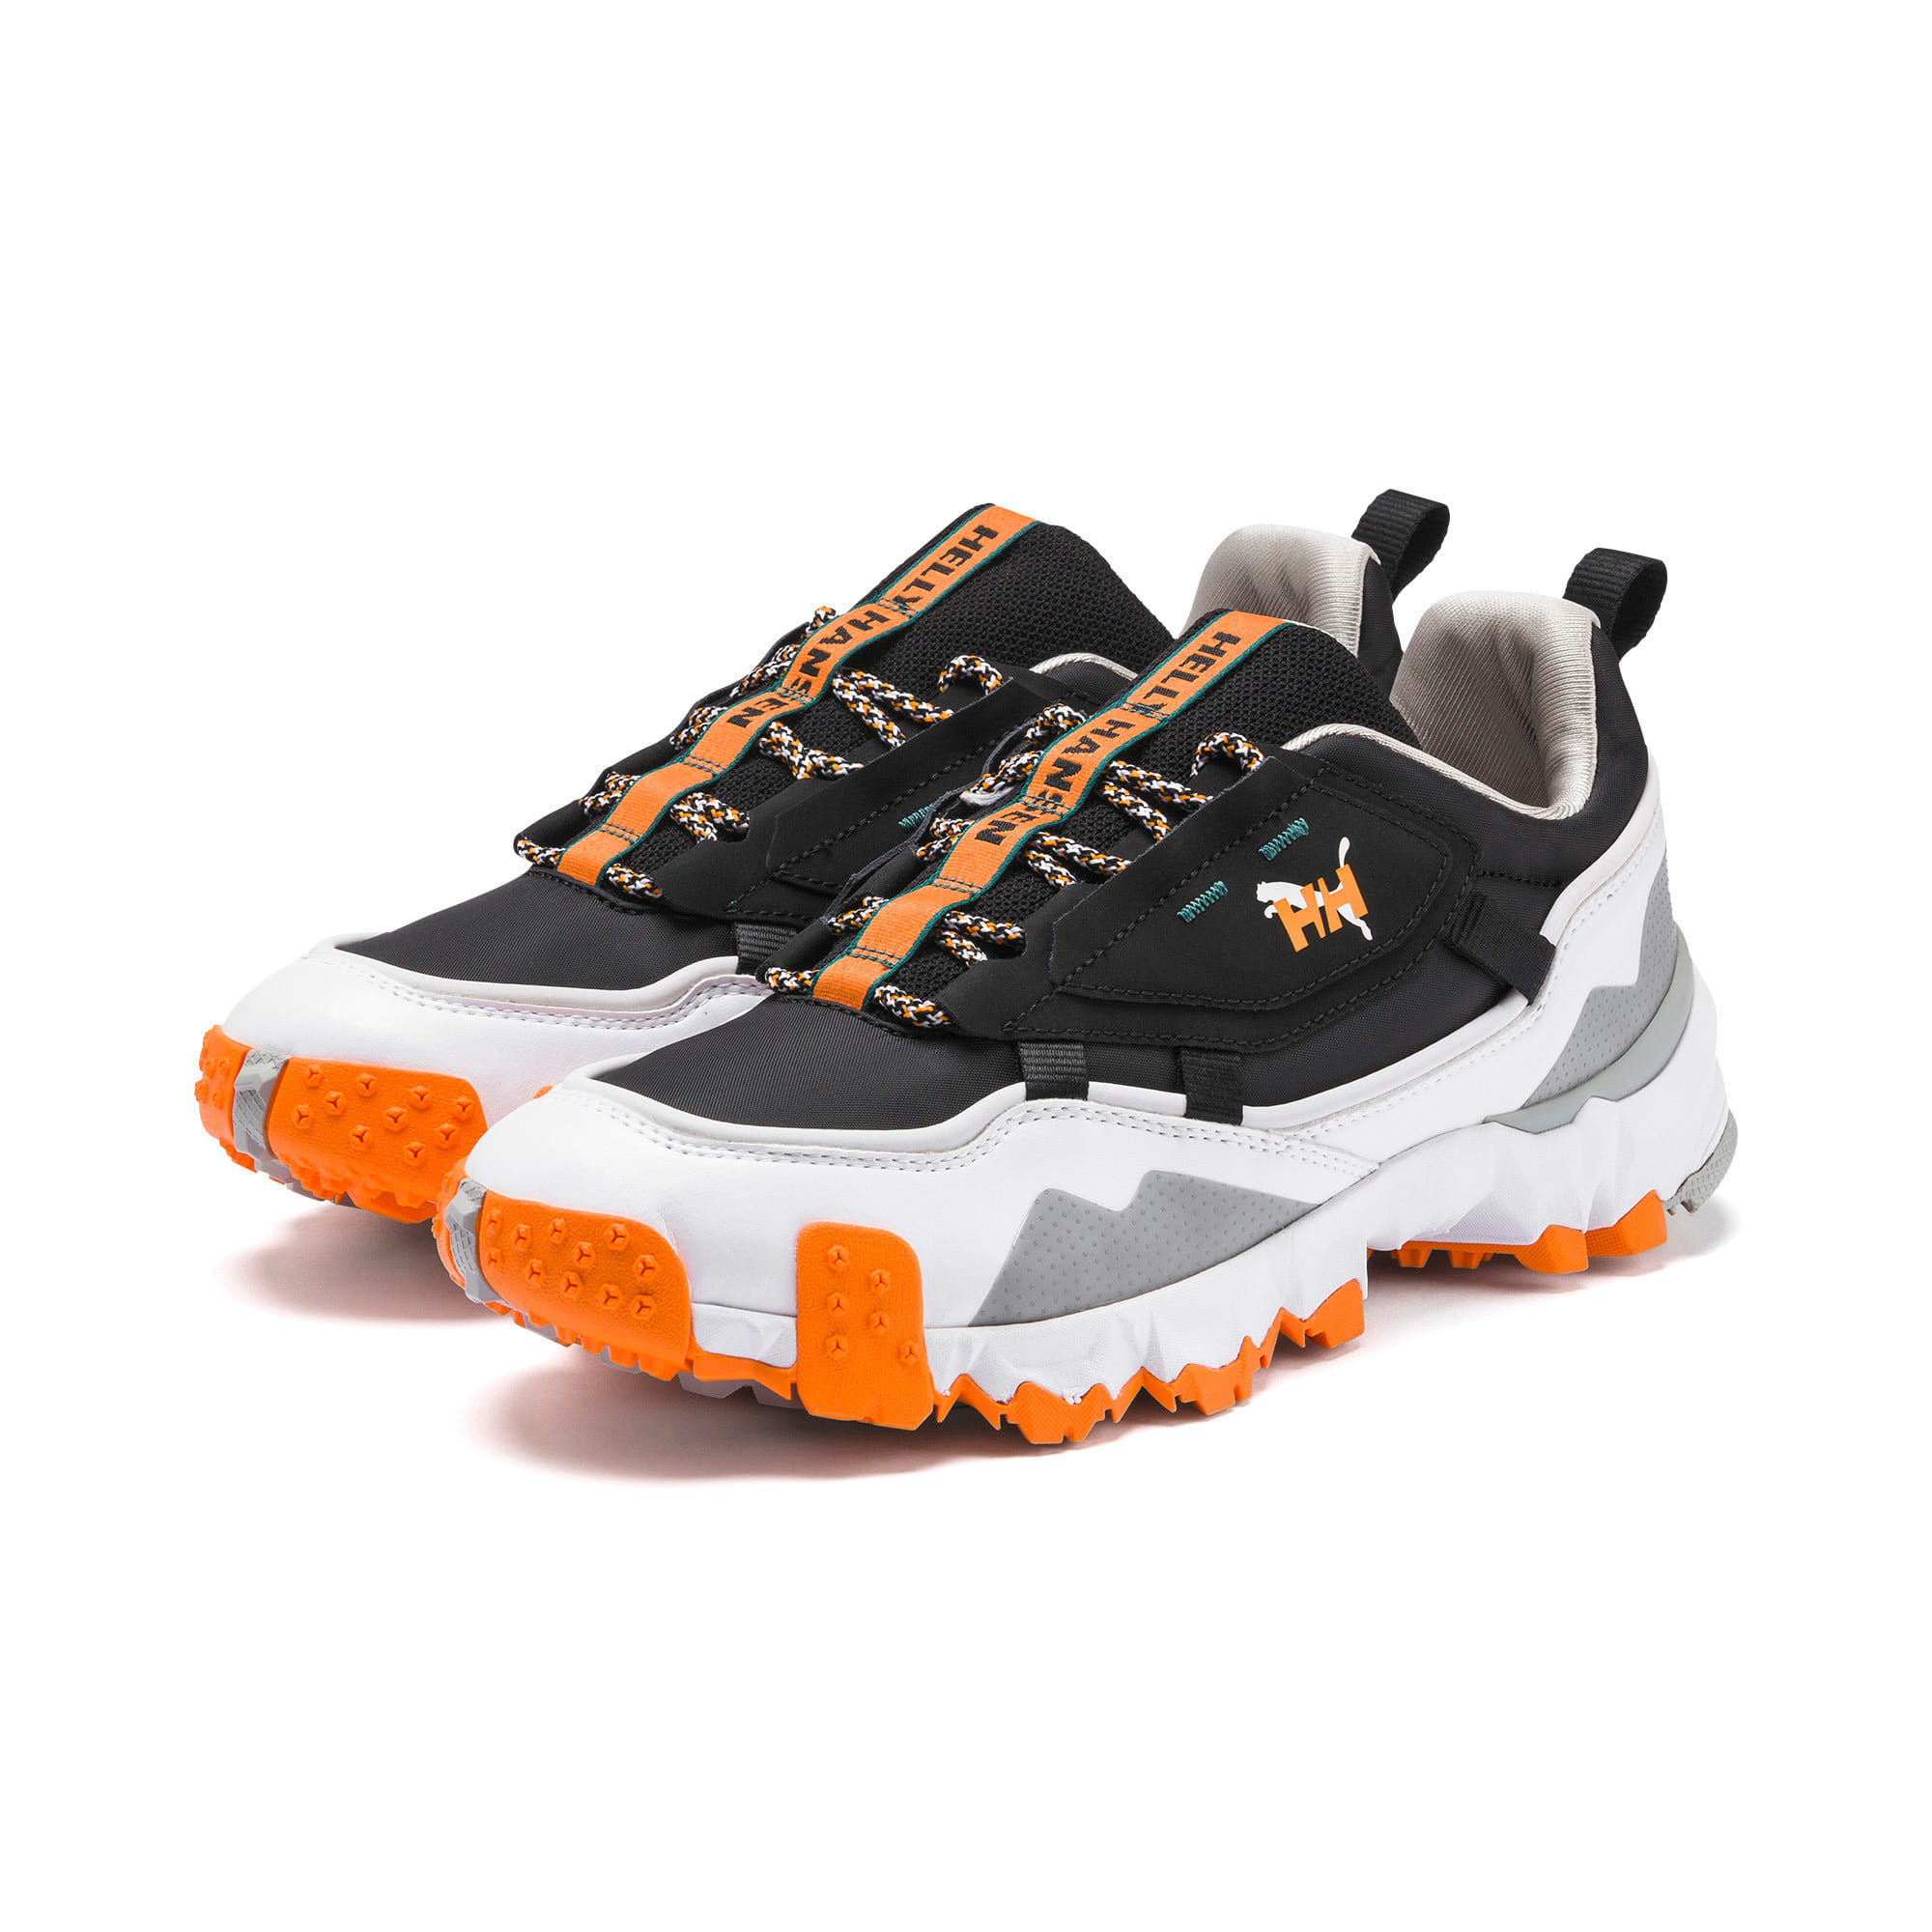 Thumbnail 2 of PUMA x HELLY HANSEN Trailfox Training Shoes, Puma Black, medium